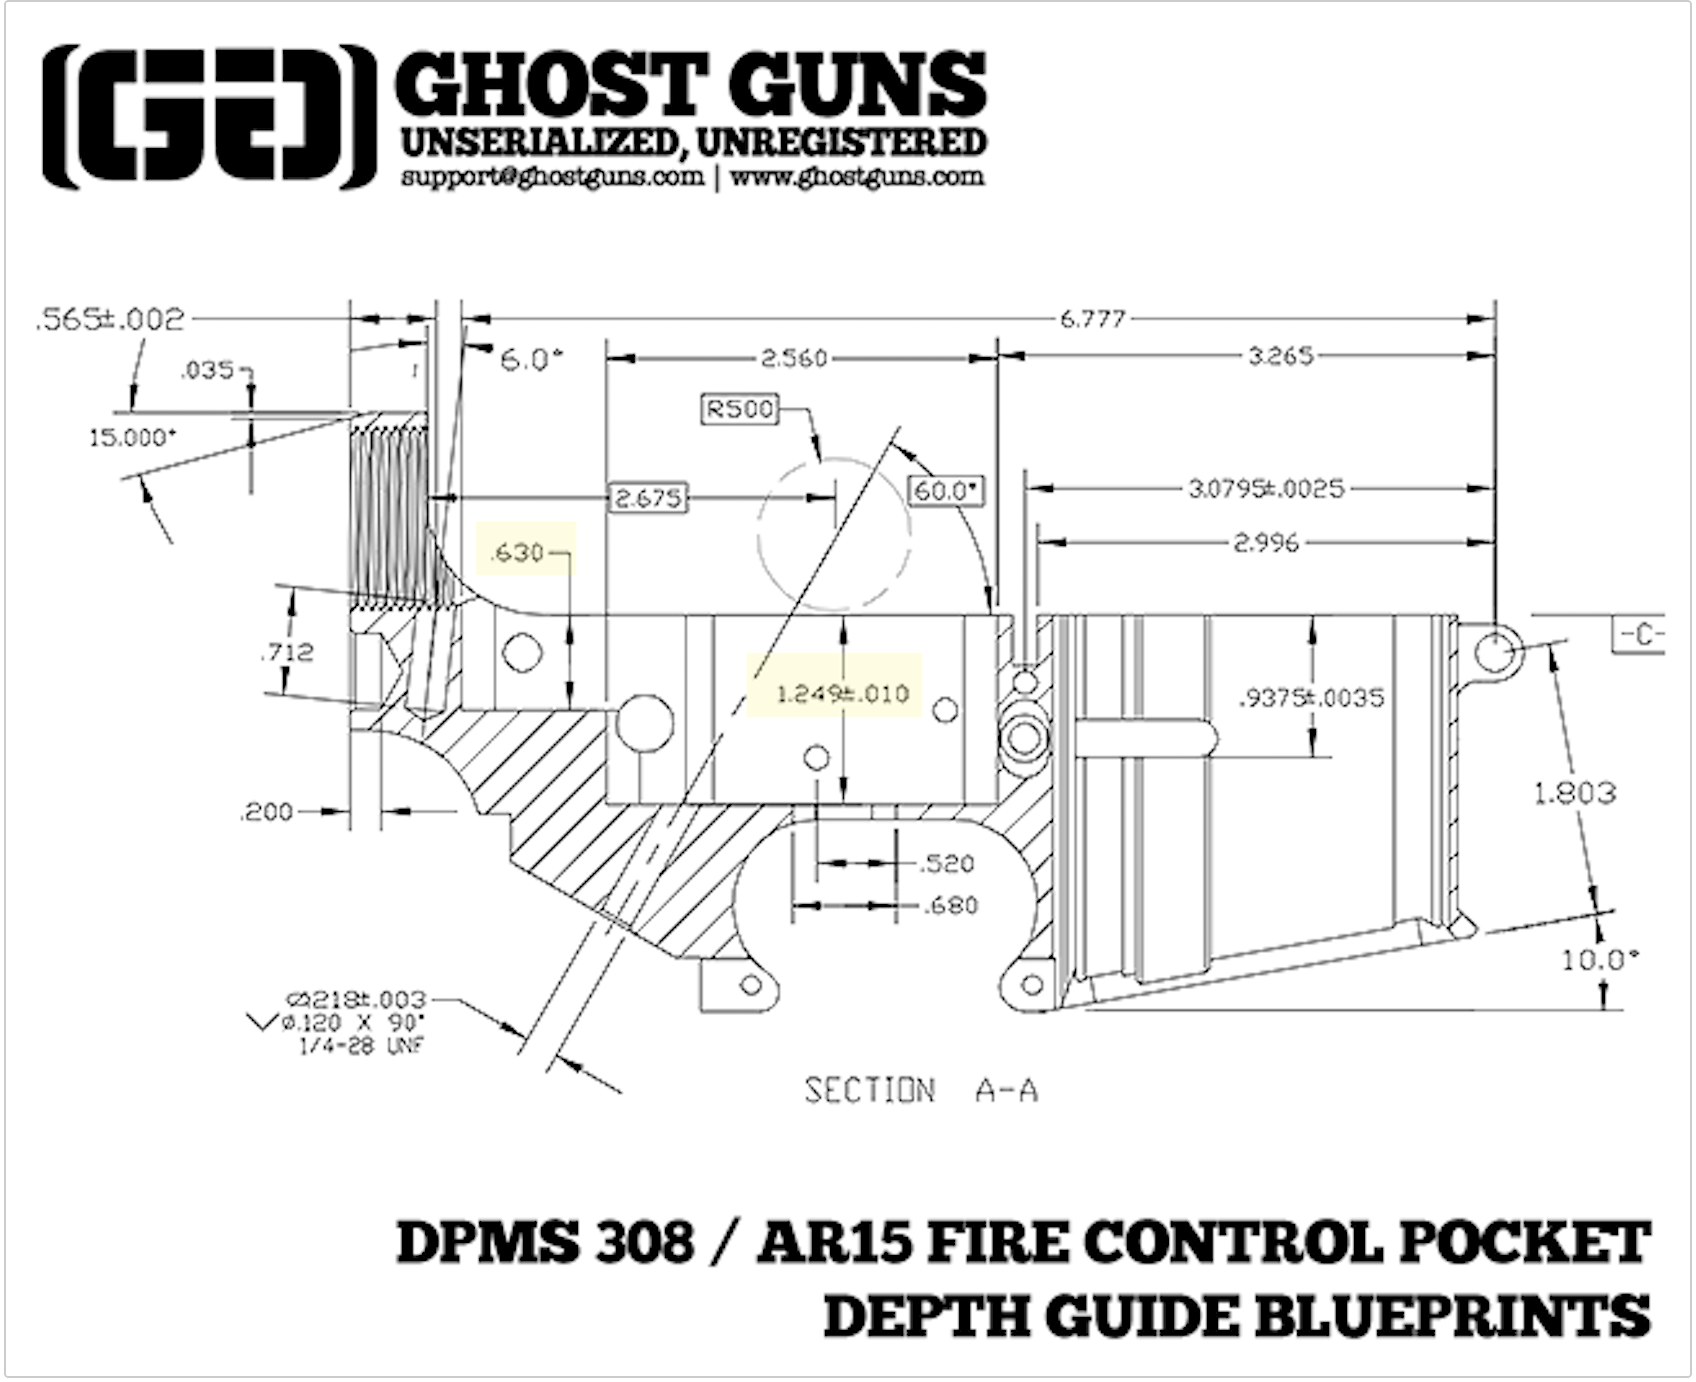 Dpms 308 Blueprints For 308 80 Lower Receiver Builds S Ostguns 13 Dpms 308